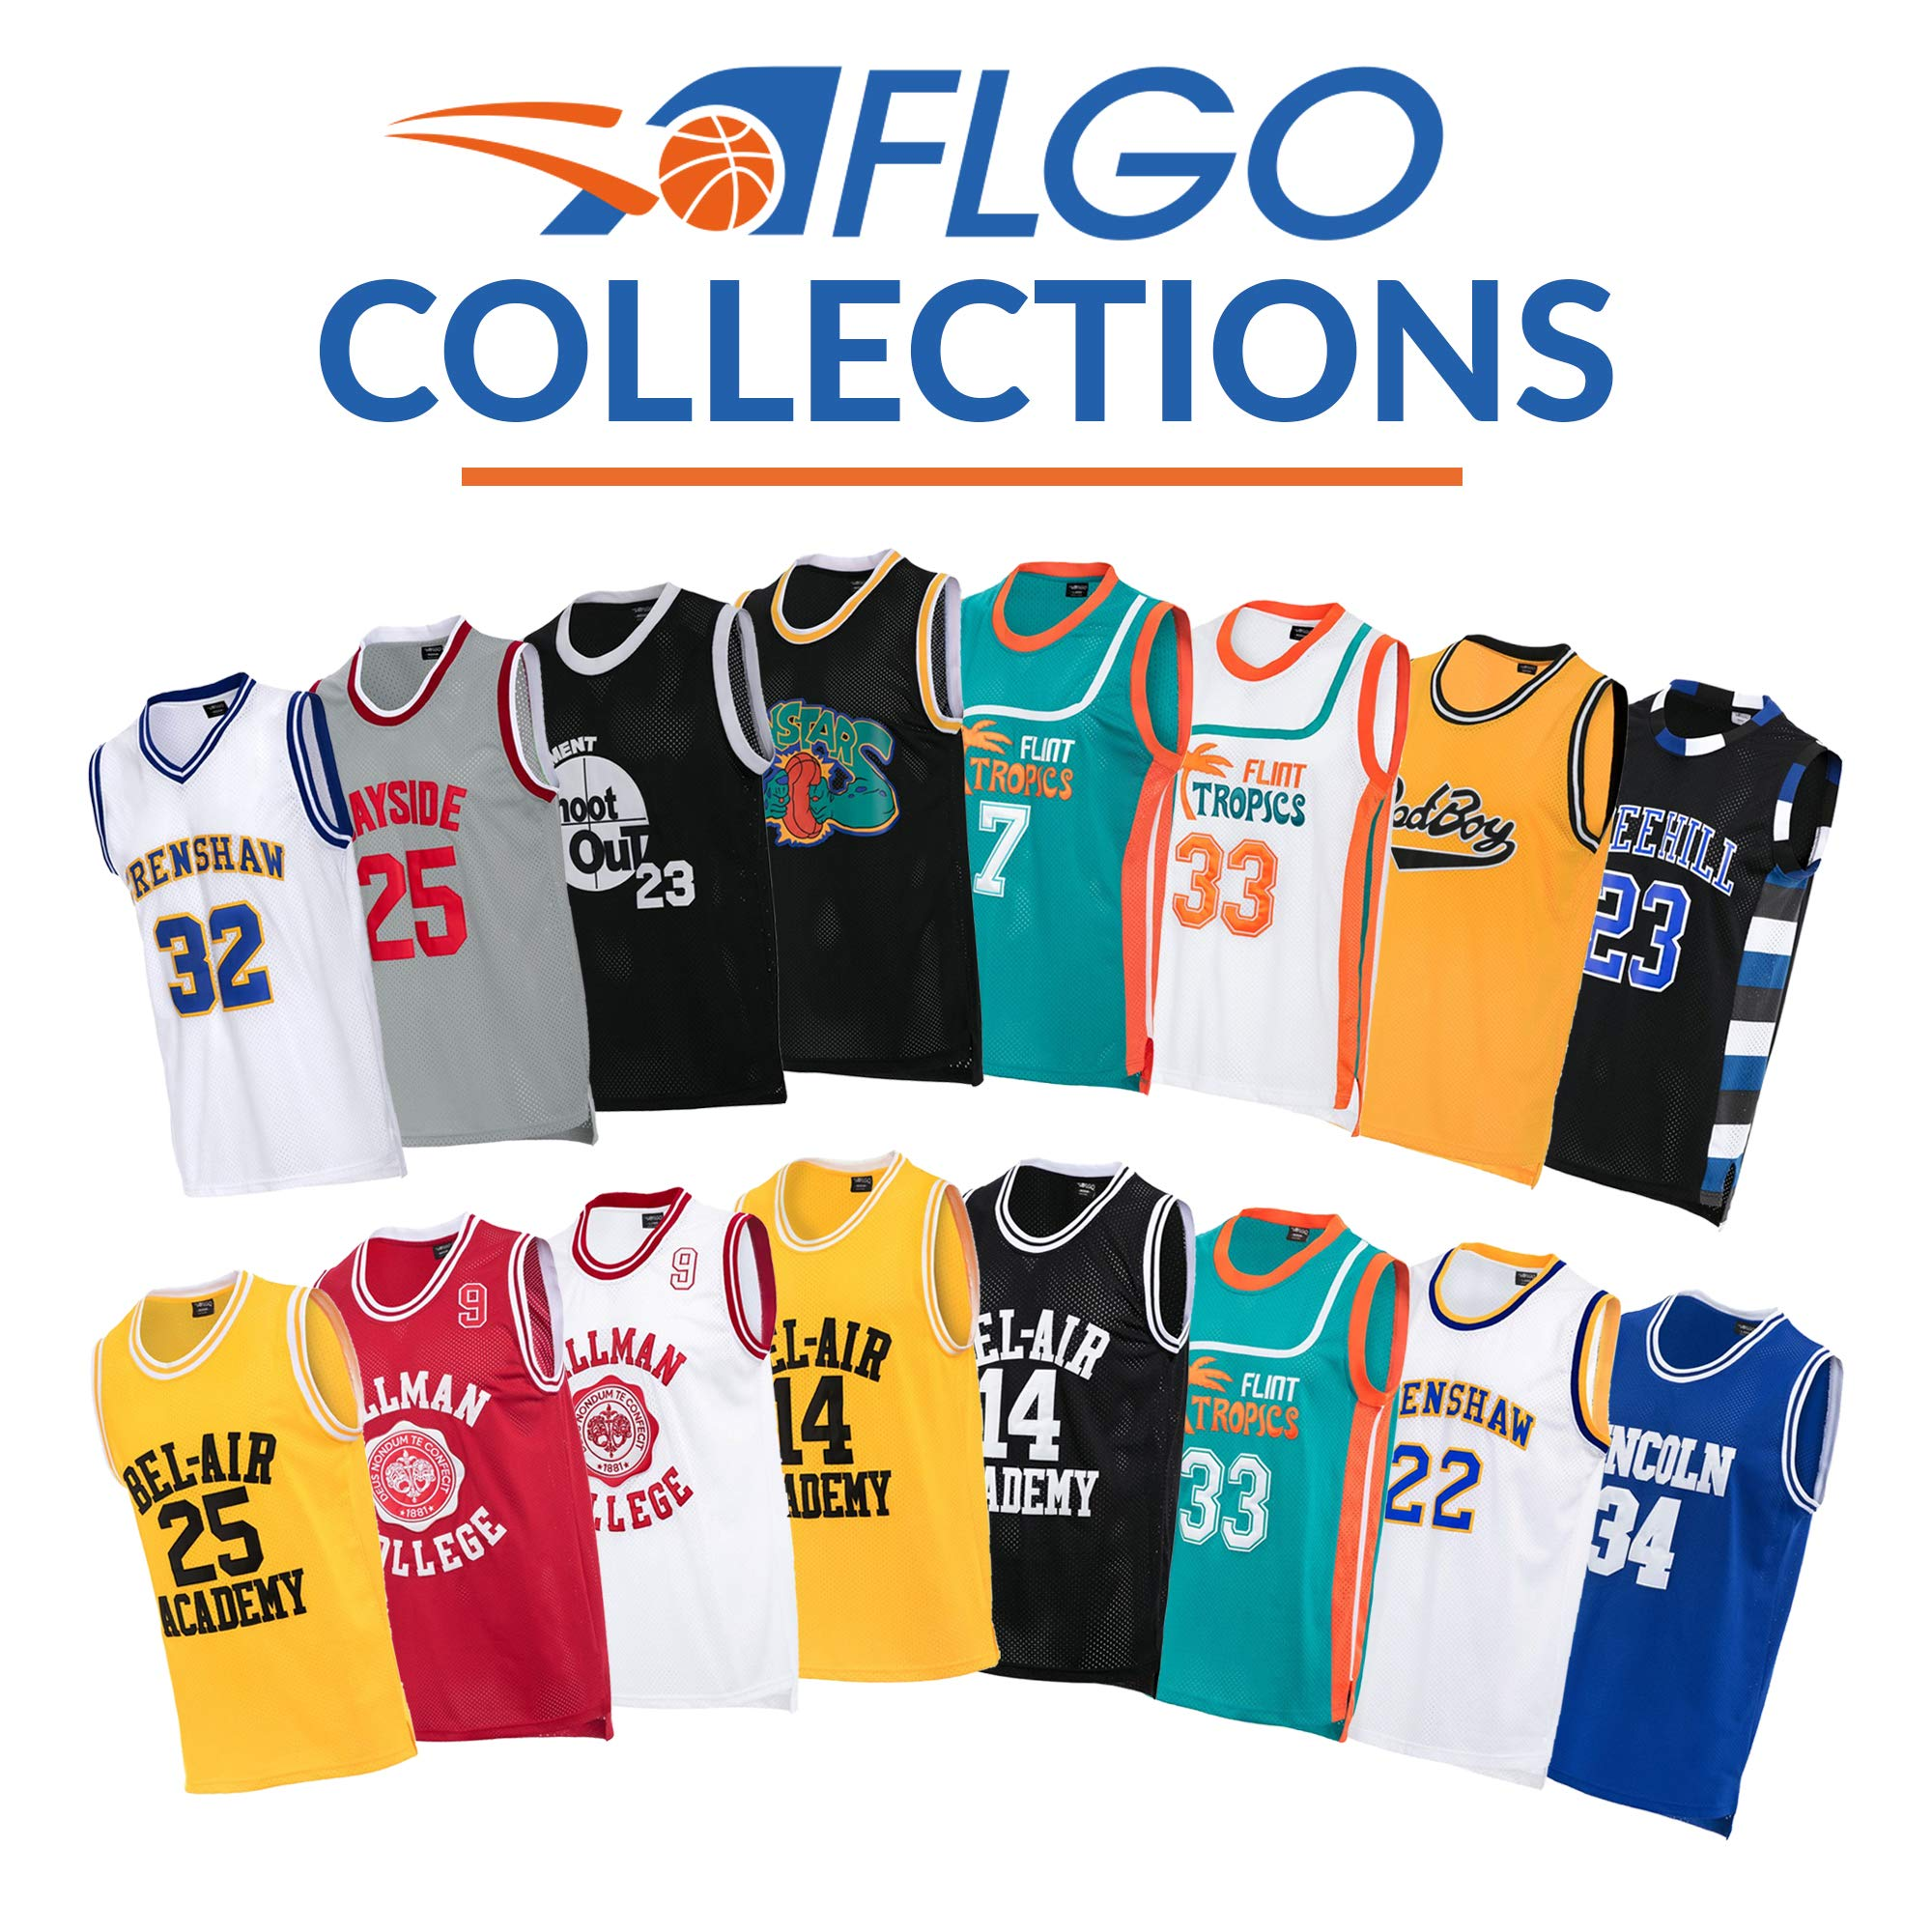 1ac0f3b06 AFLGO Jesus Shuttlesworth 34 Lincoln High School Basketball Jersey Include  Set Wristbands S-XXL (Blue